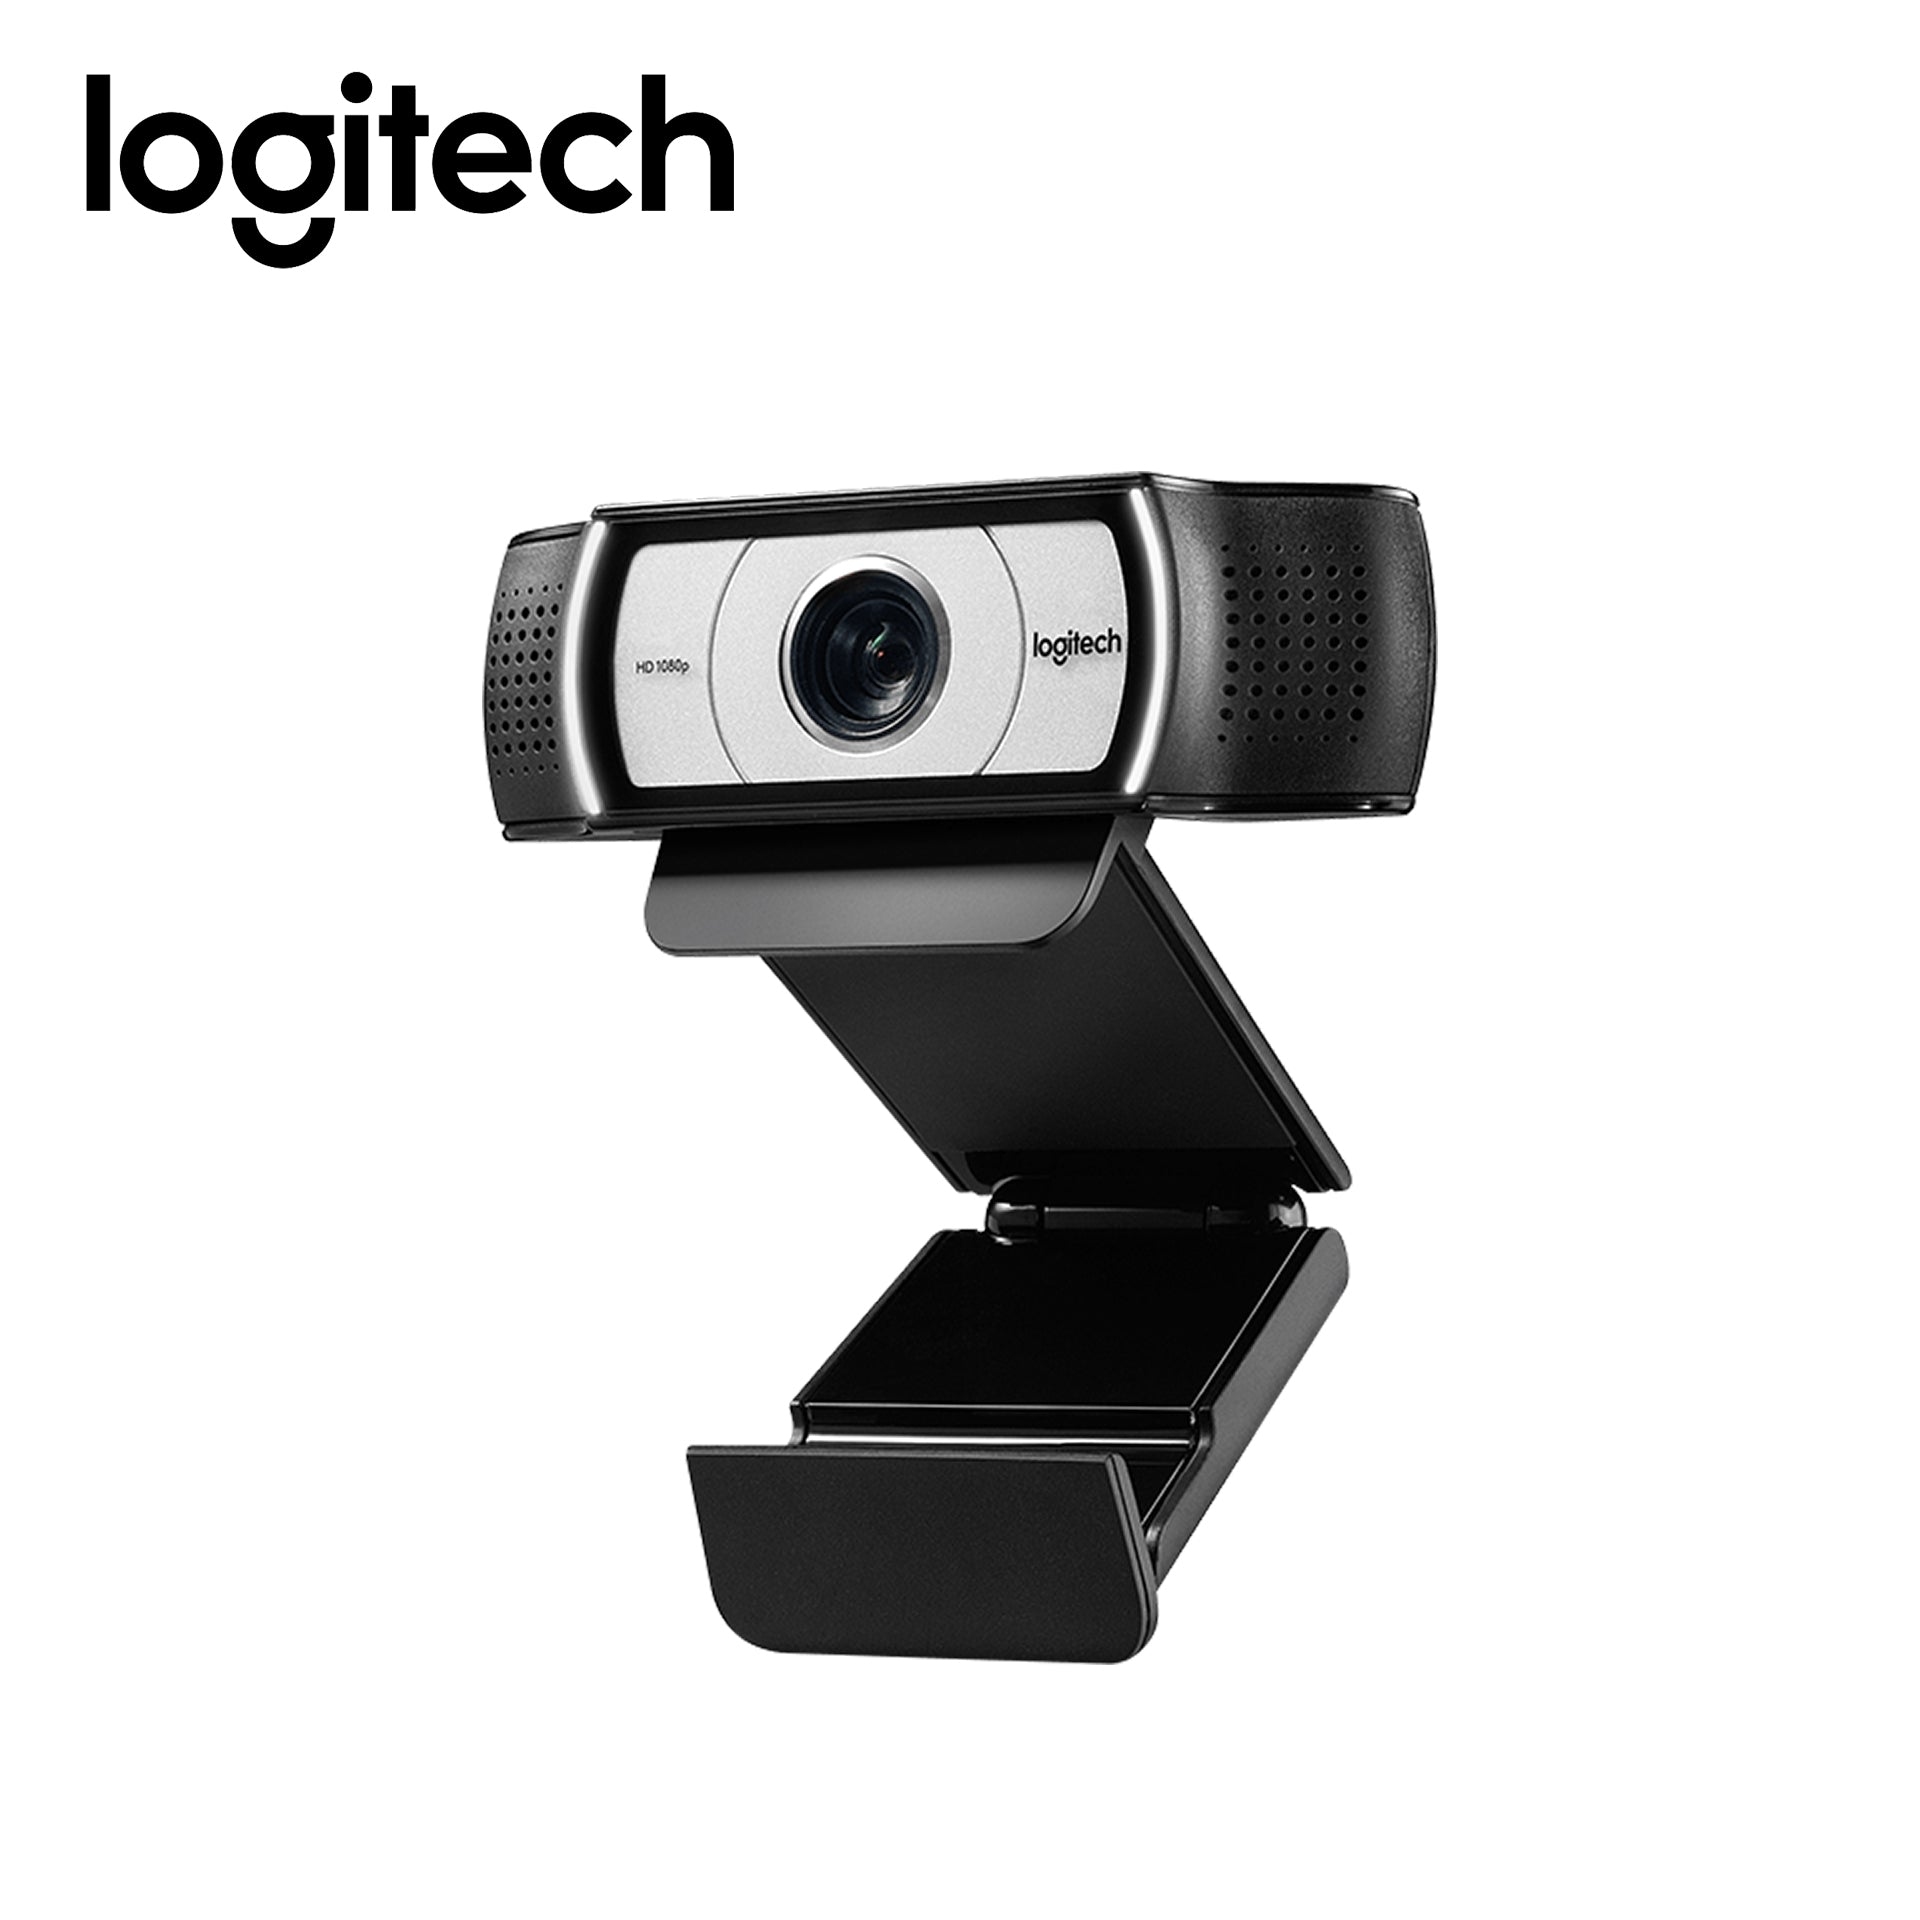 Logitech C930c 1080p Full HD Business Webcam